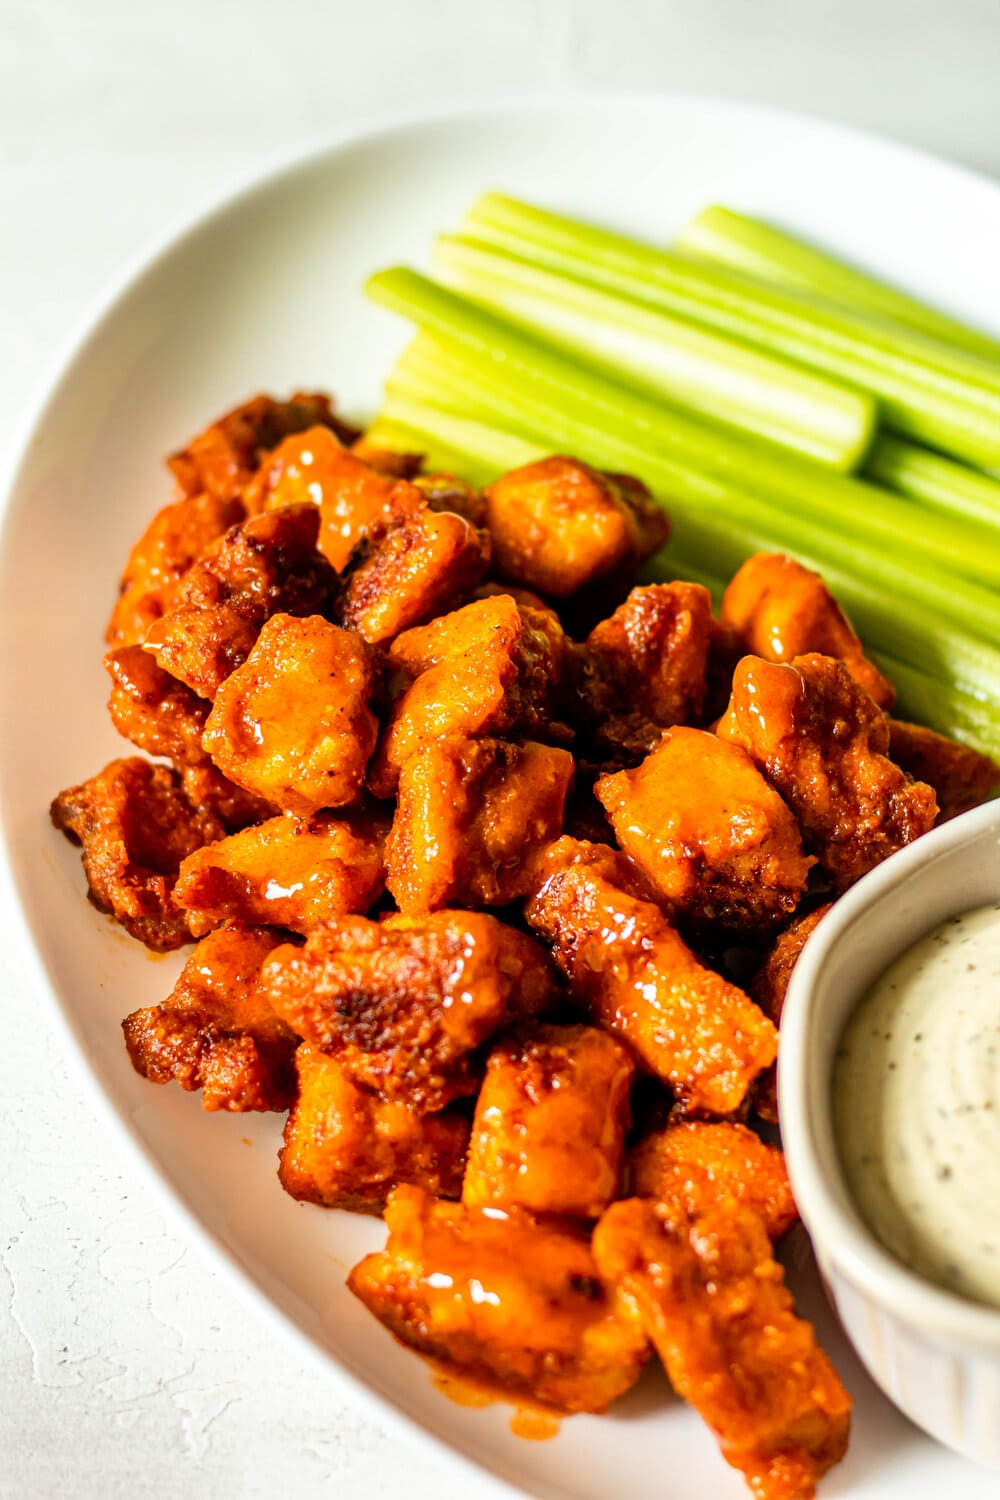 Easy Buffalo Chicken Bites with celery and ranch